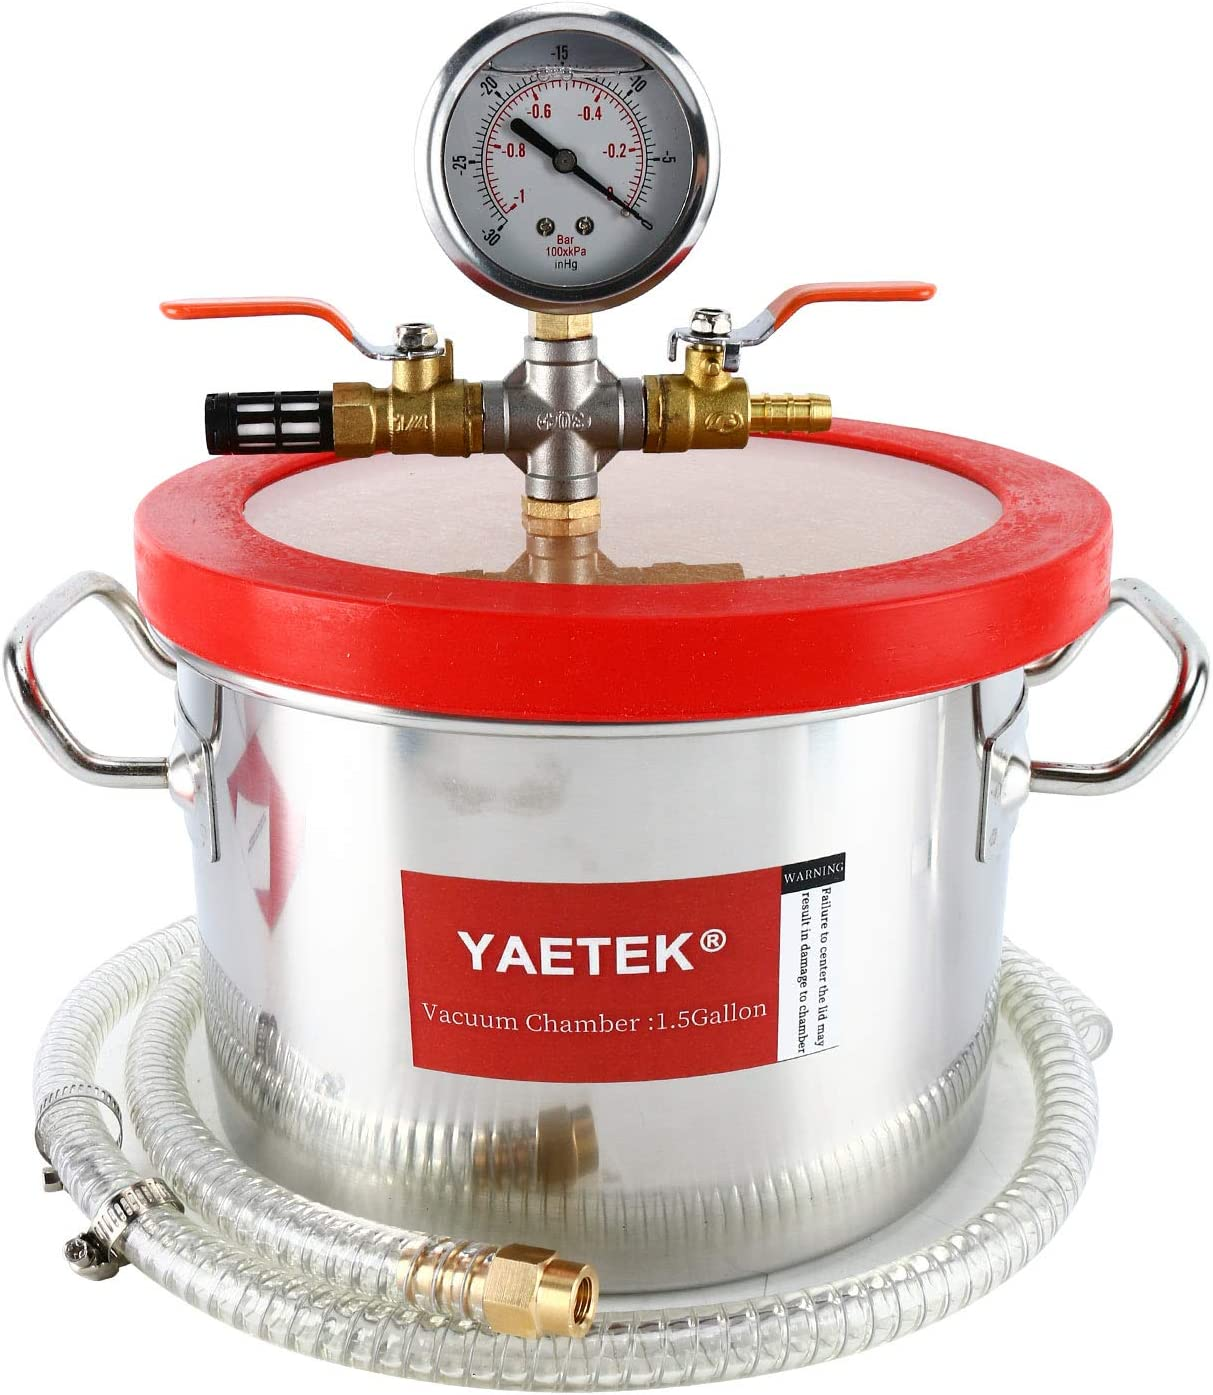 YAETEK 1.5 Gallon Stainless Steel Vacuum Chamber Silicone Kit for Degassing Resins, Silicone and Epoxies